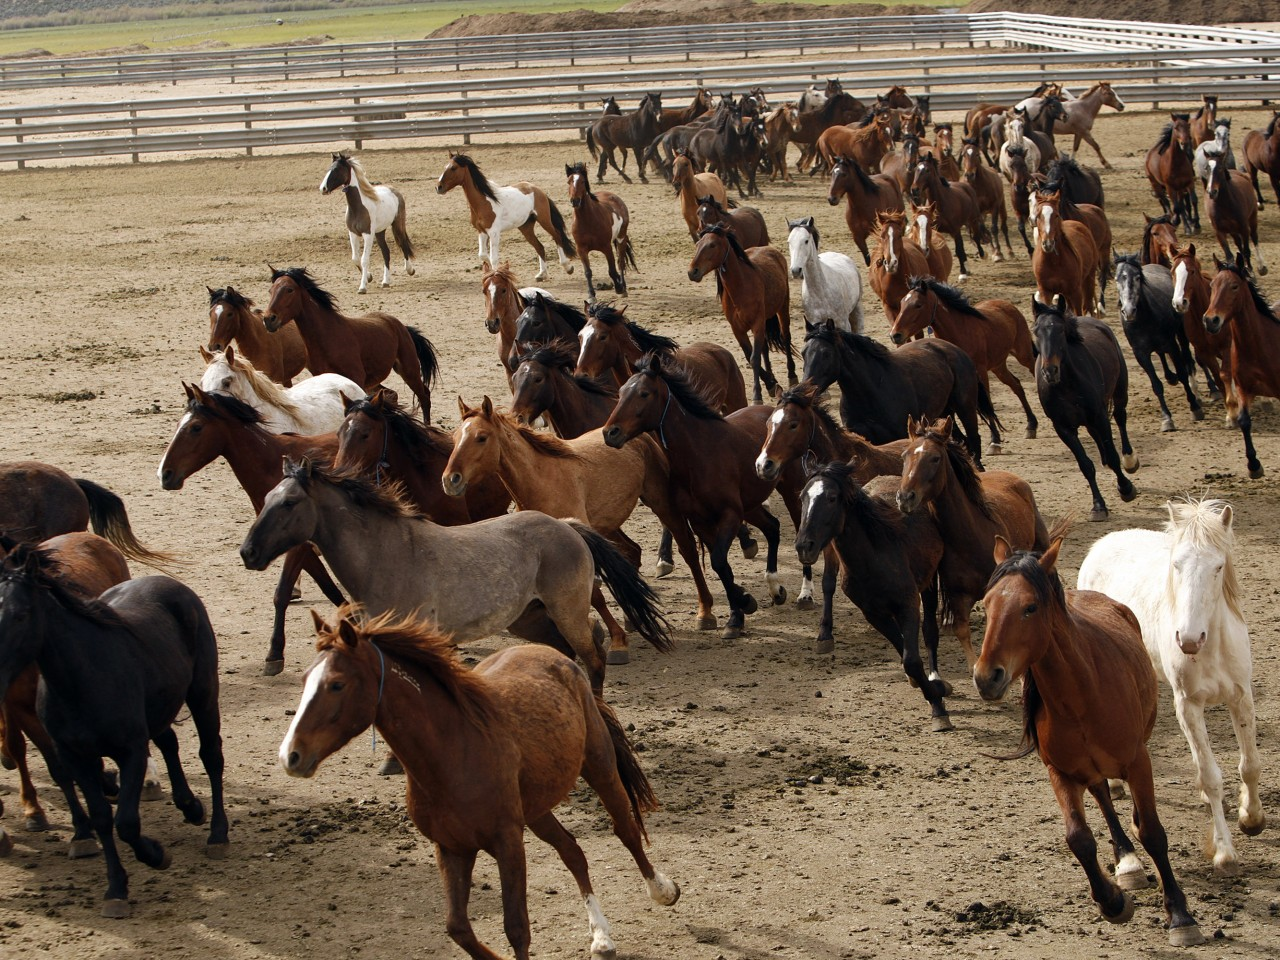 wild-horses-independent-review.jpeg-1280x960